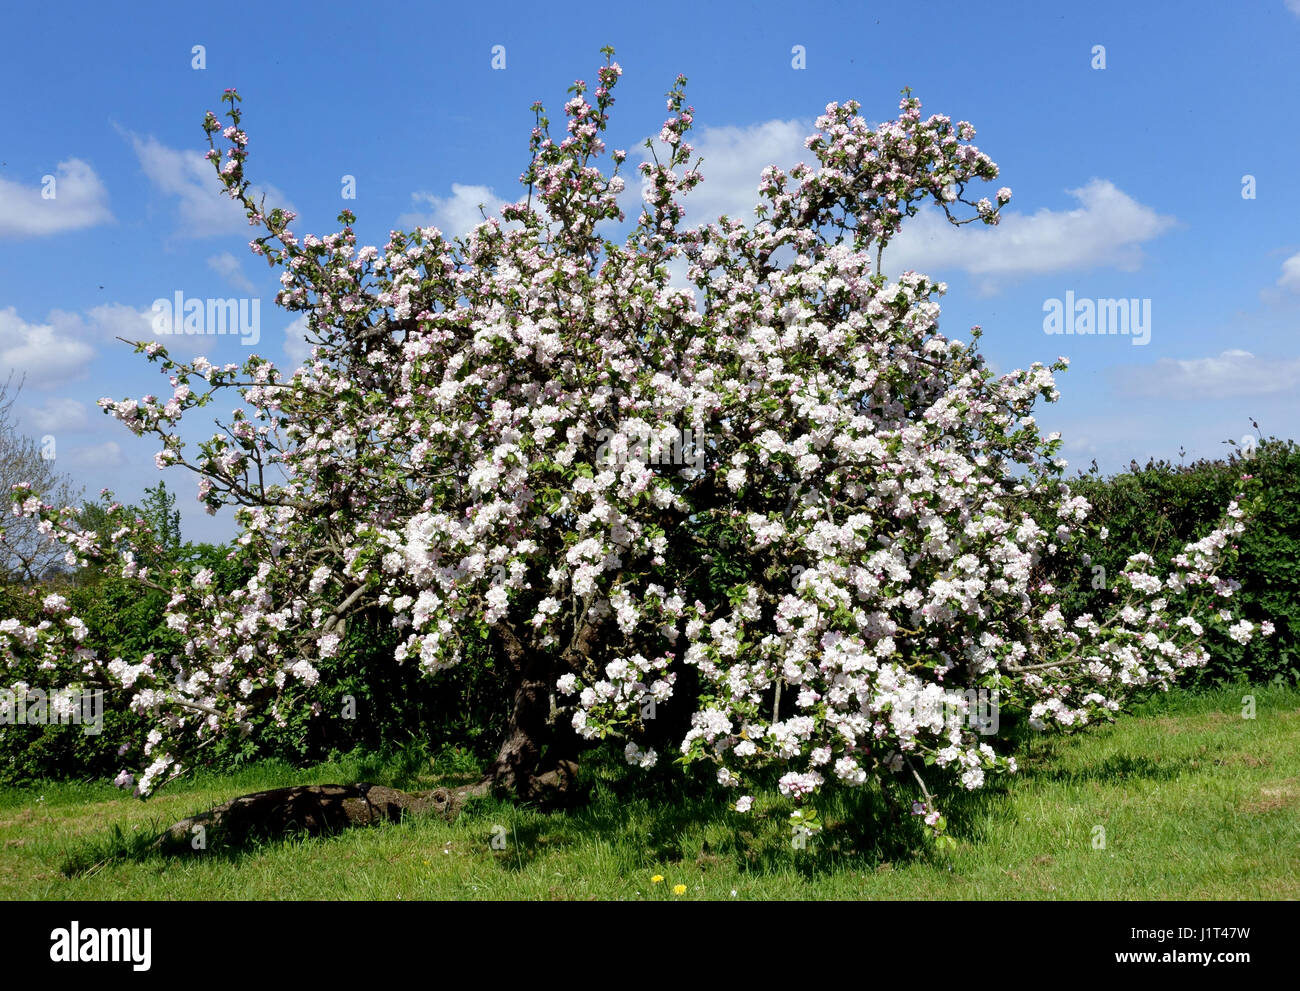 Tom Putt apple tree blossom in a country garden orchard, Somerset, England - Stock Image